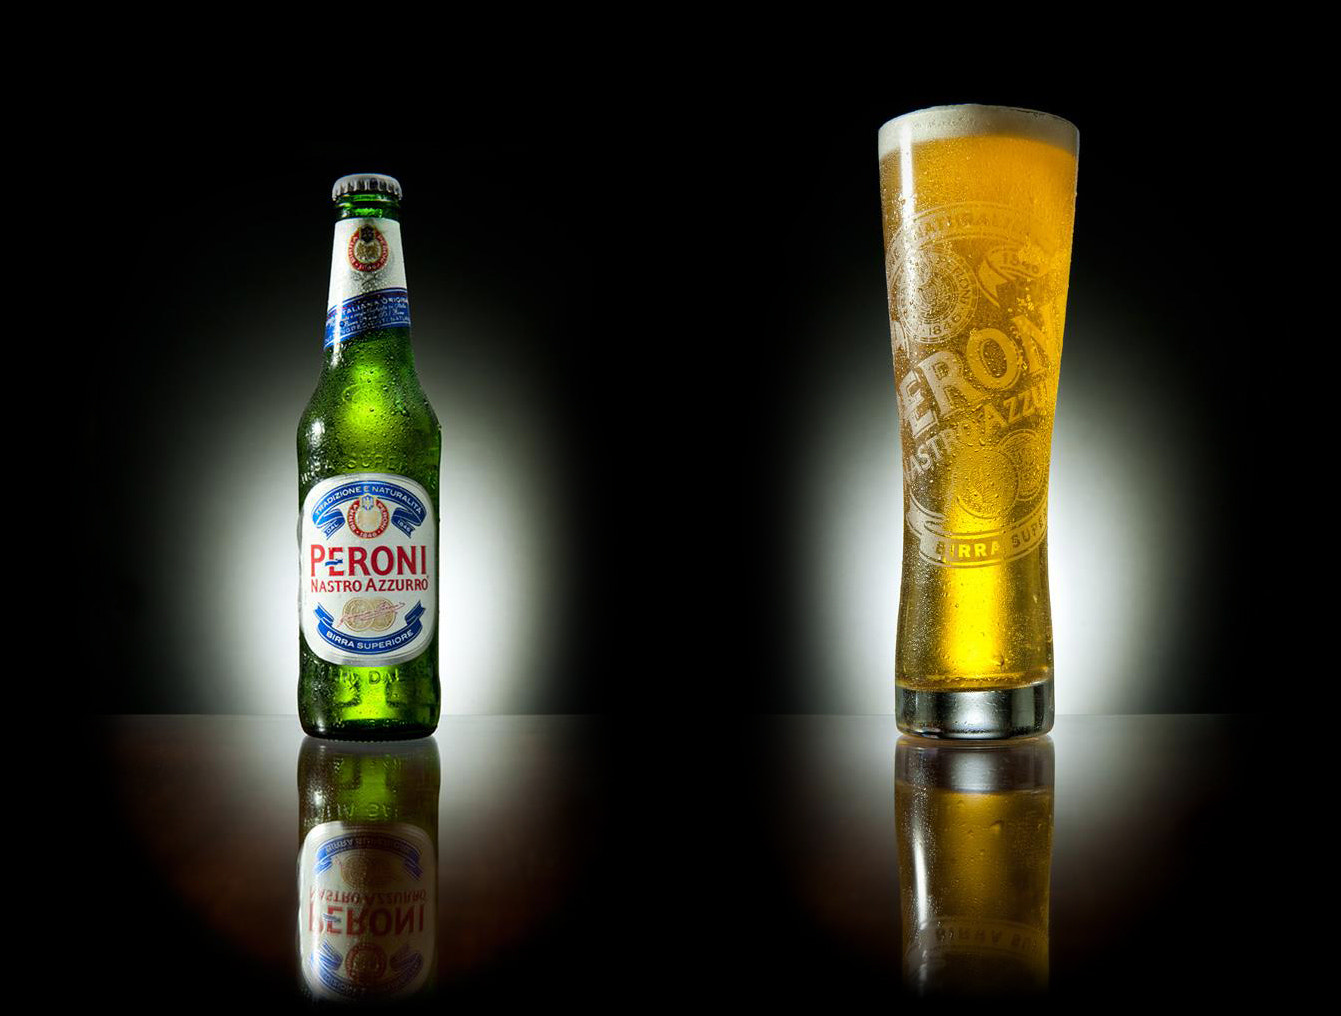 Photograph Peroni Nastro Azzurro by Lee Ramsden on 500px